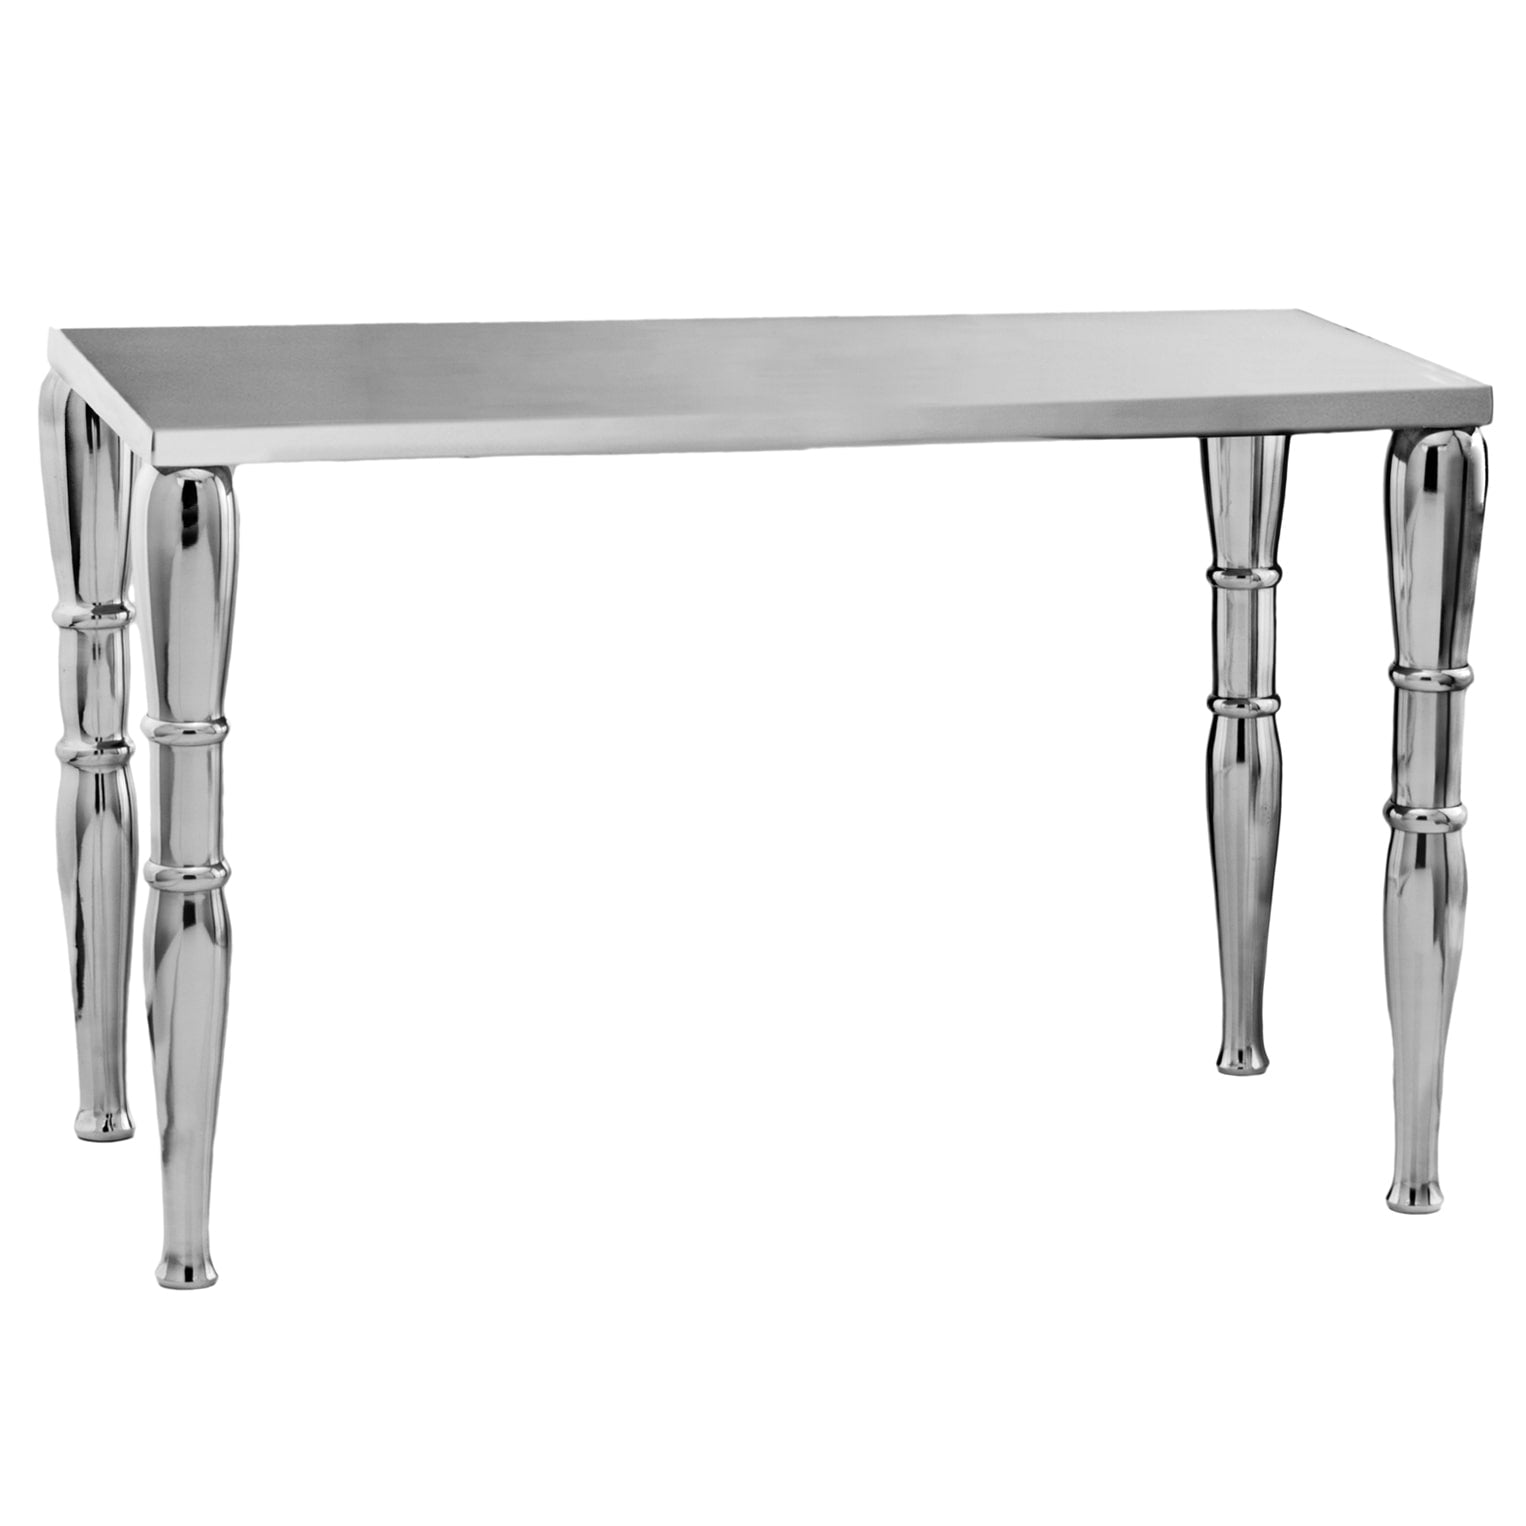 Jackson LG Rectangle Table/Bench - Casa Muebles